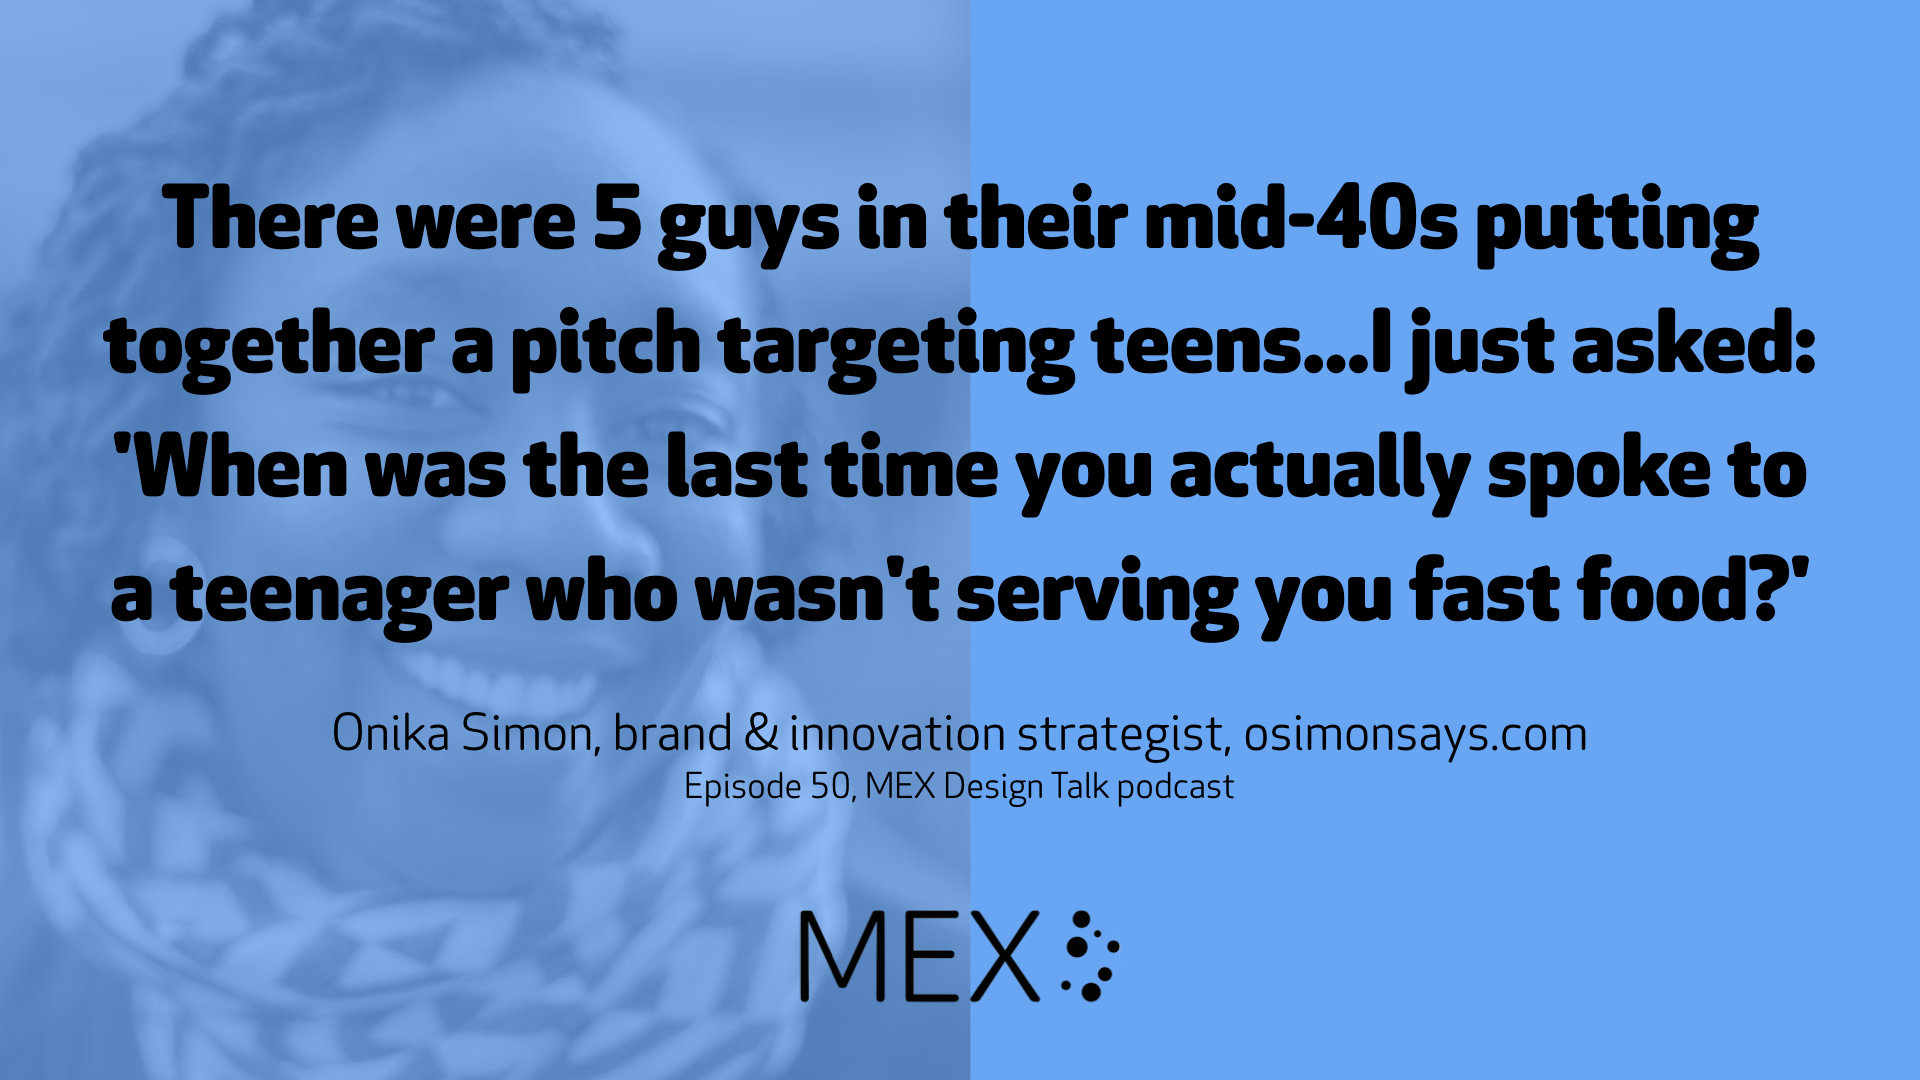 There were 5 guys in their mid-40s putting together a pitch targeting teens...I just asked: 'When was the last time you actually spoke to a teenager who wasn't serving you fast food?' Onika Simon, brand & innovation strategist, osimonsays.com Episode 50, MEX Design Talk podcast